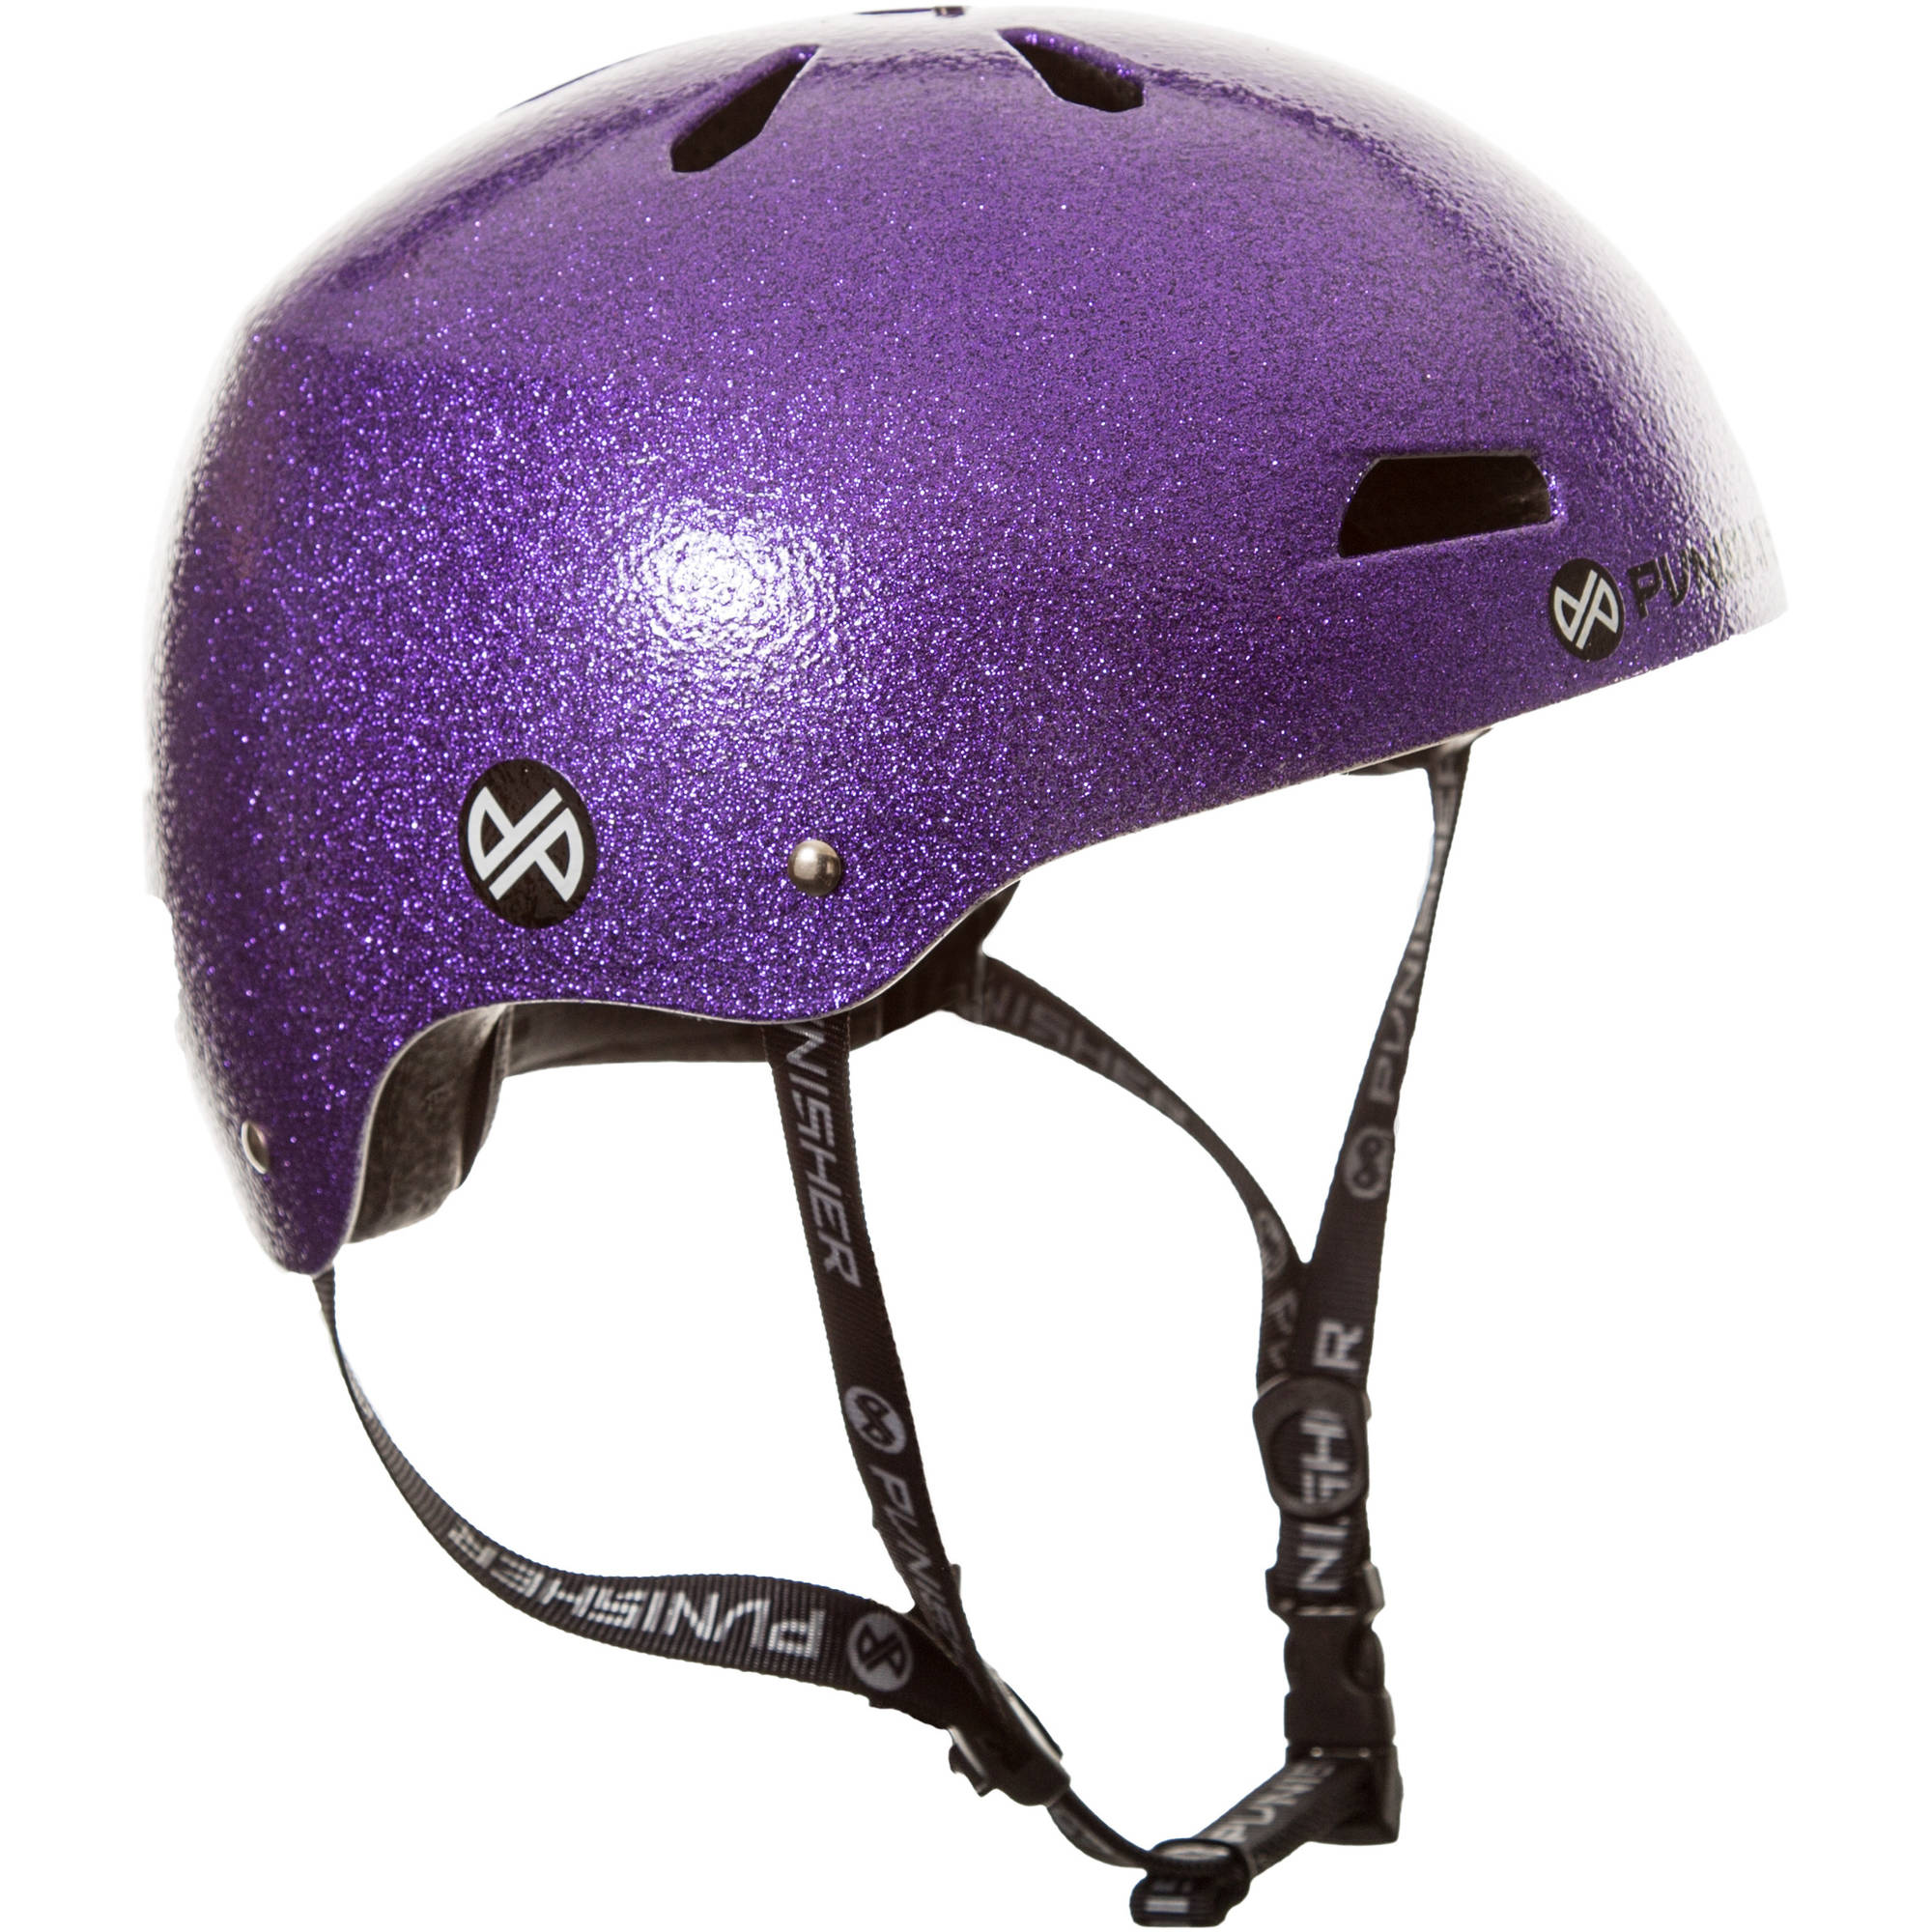 Punisher Skateboards Pro 13-Vent Purple Flake Dual Safety Certified BMX Bike and Skateboard Helmet, Youth Medium Large by Punisher Skateboards